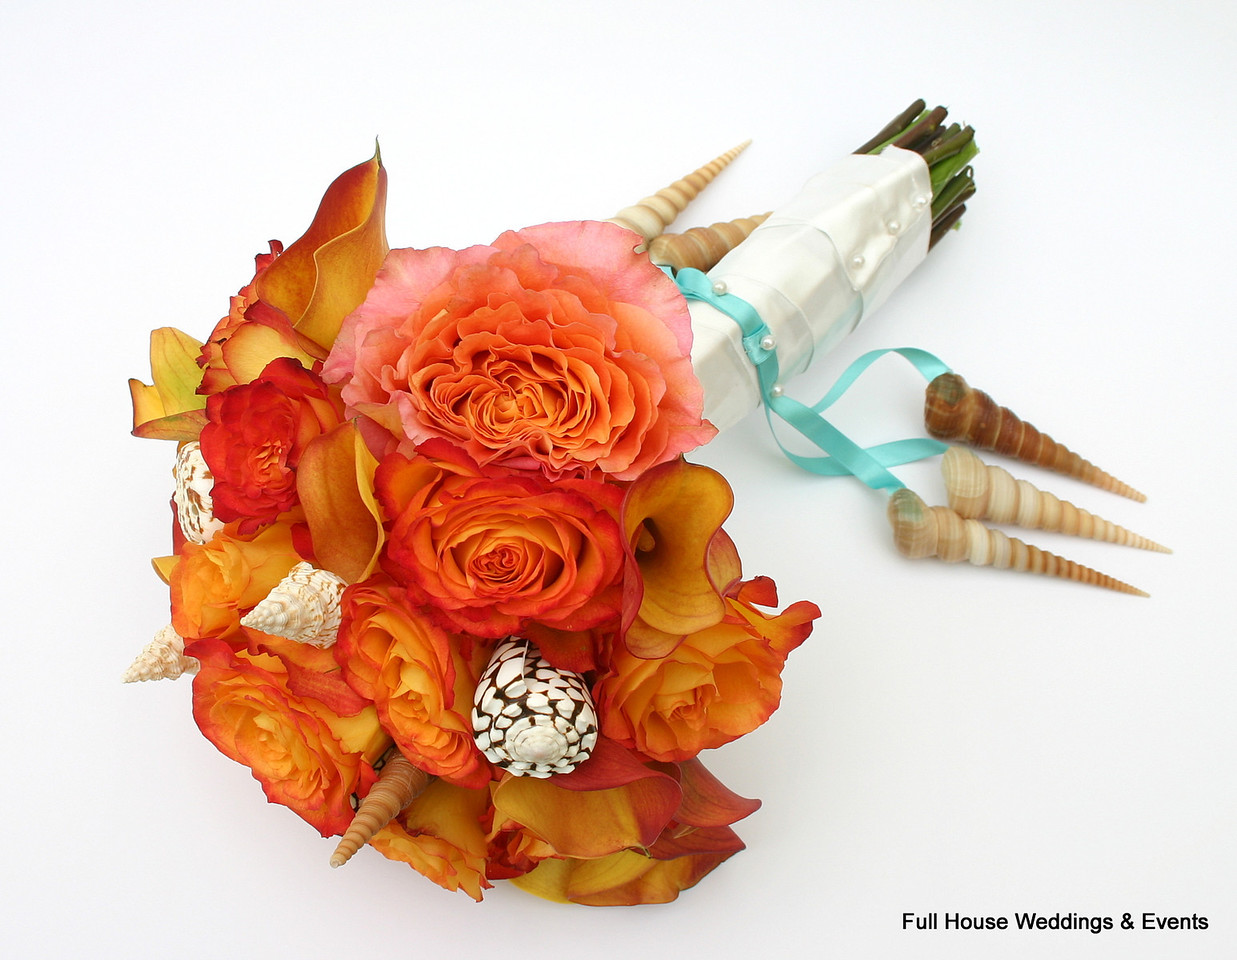 Bouquet - Bi Color Orange/Yellow Roses, Mango Calla Lilies with seashell accents